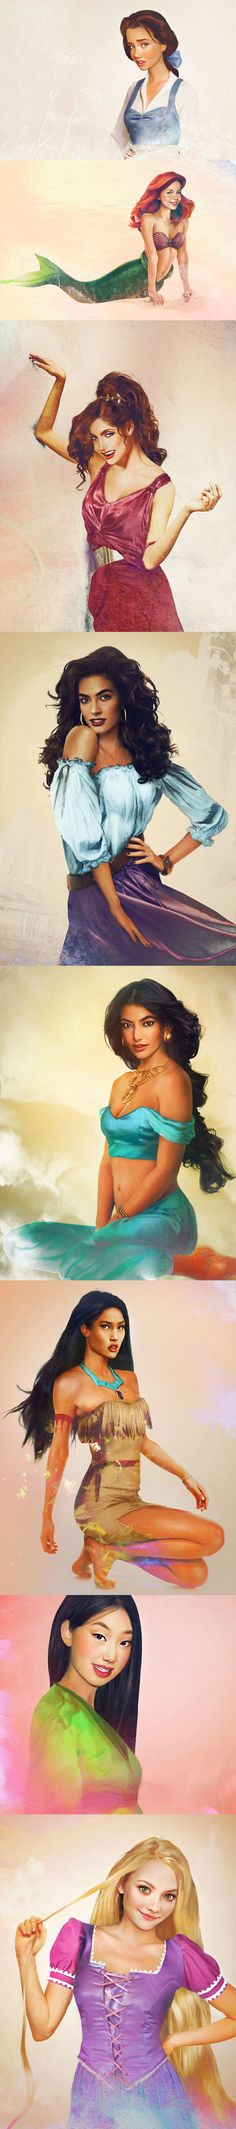 Really well done....Modern Day Disney Princesses. Configuring thousands of physical features of women from around the world to come up with the perfect modern day princess! Interesting!